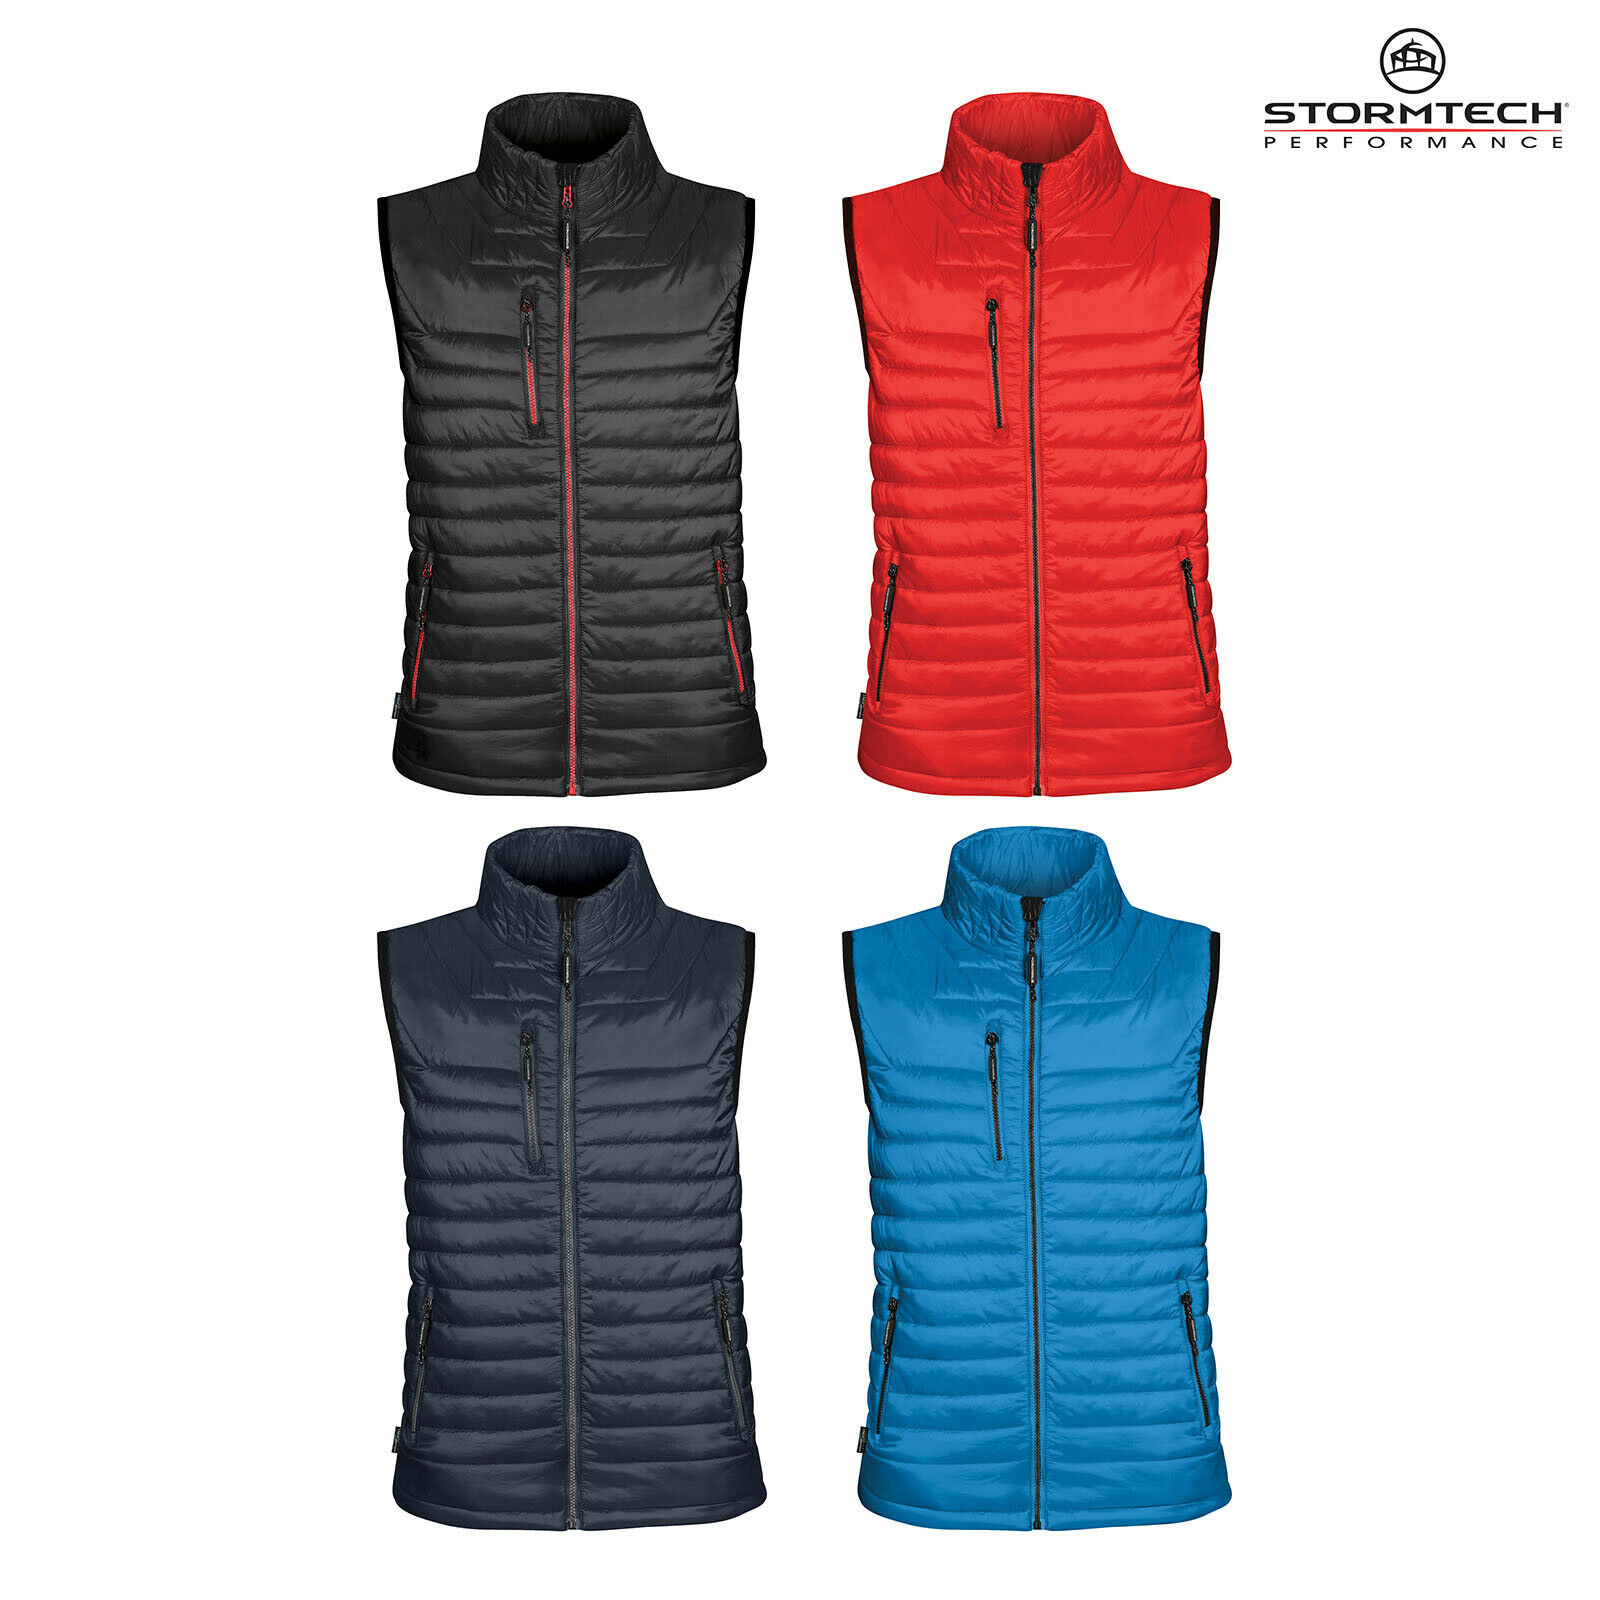 Stormtech Gravity Thermal Vest PFV-2